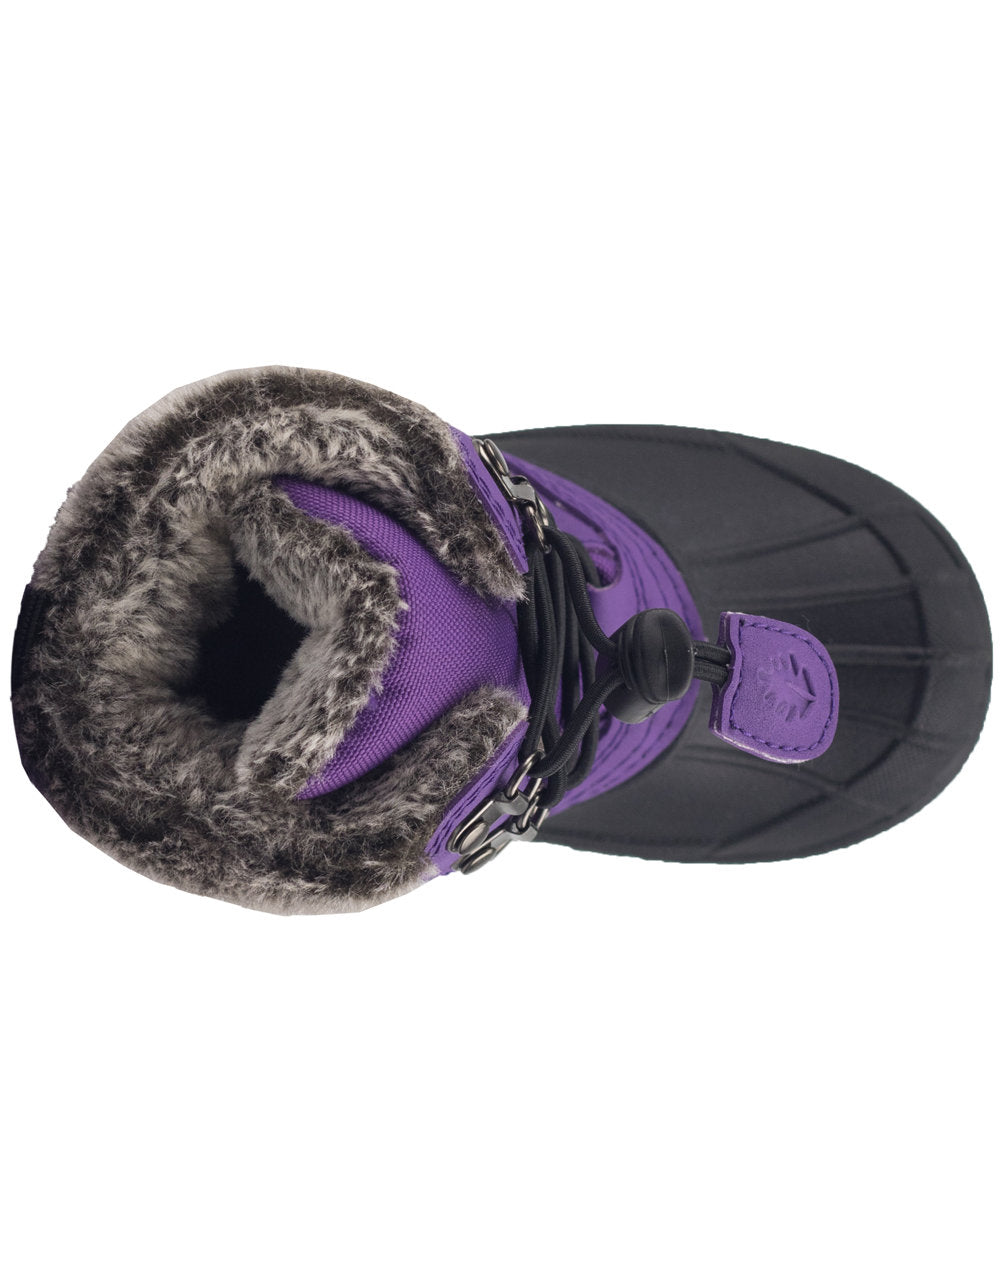 Plum Purple Lace Up Winter Snow Boots